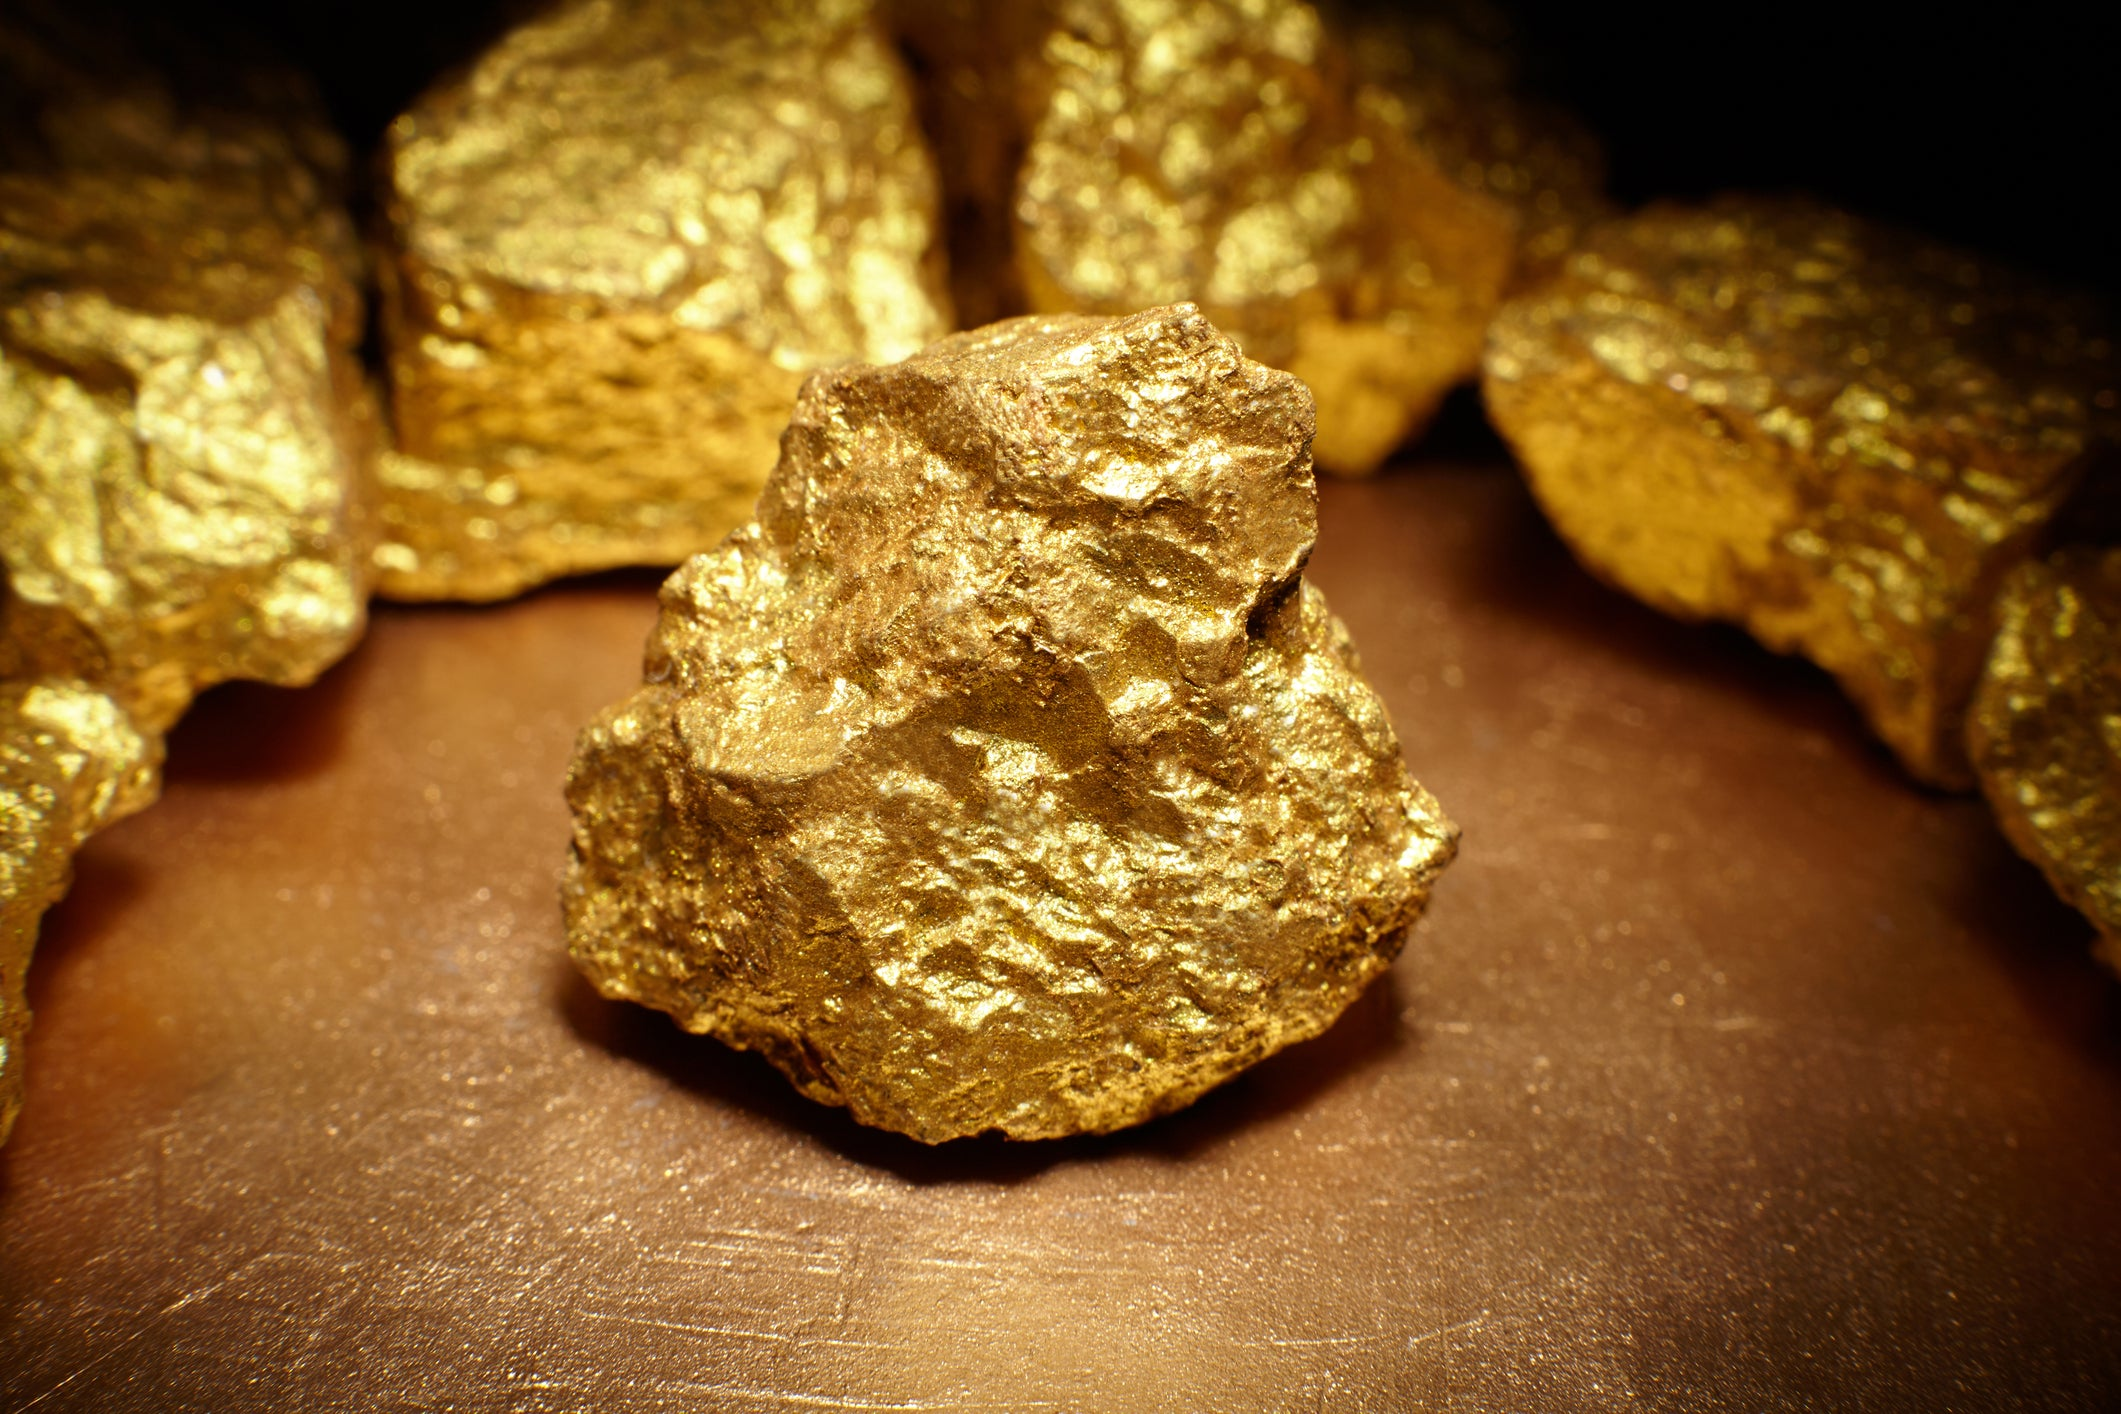 Pictures of gold